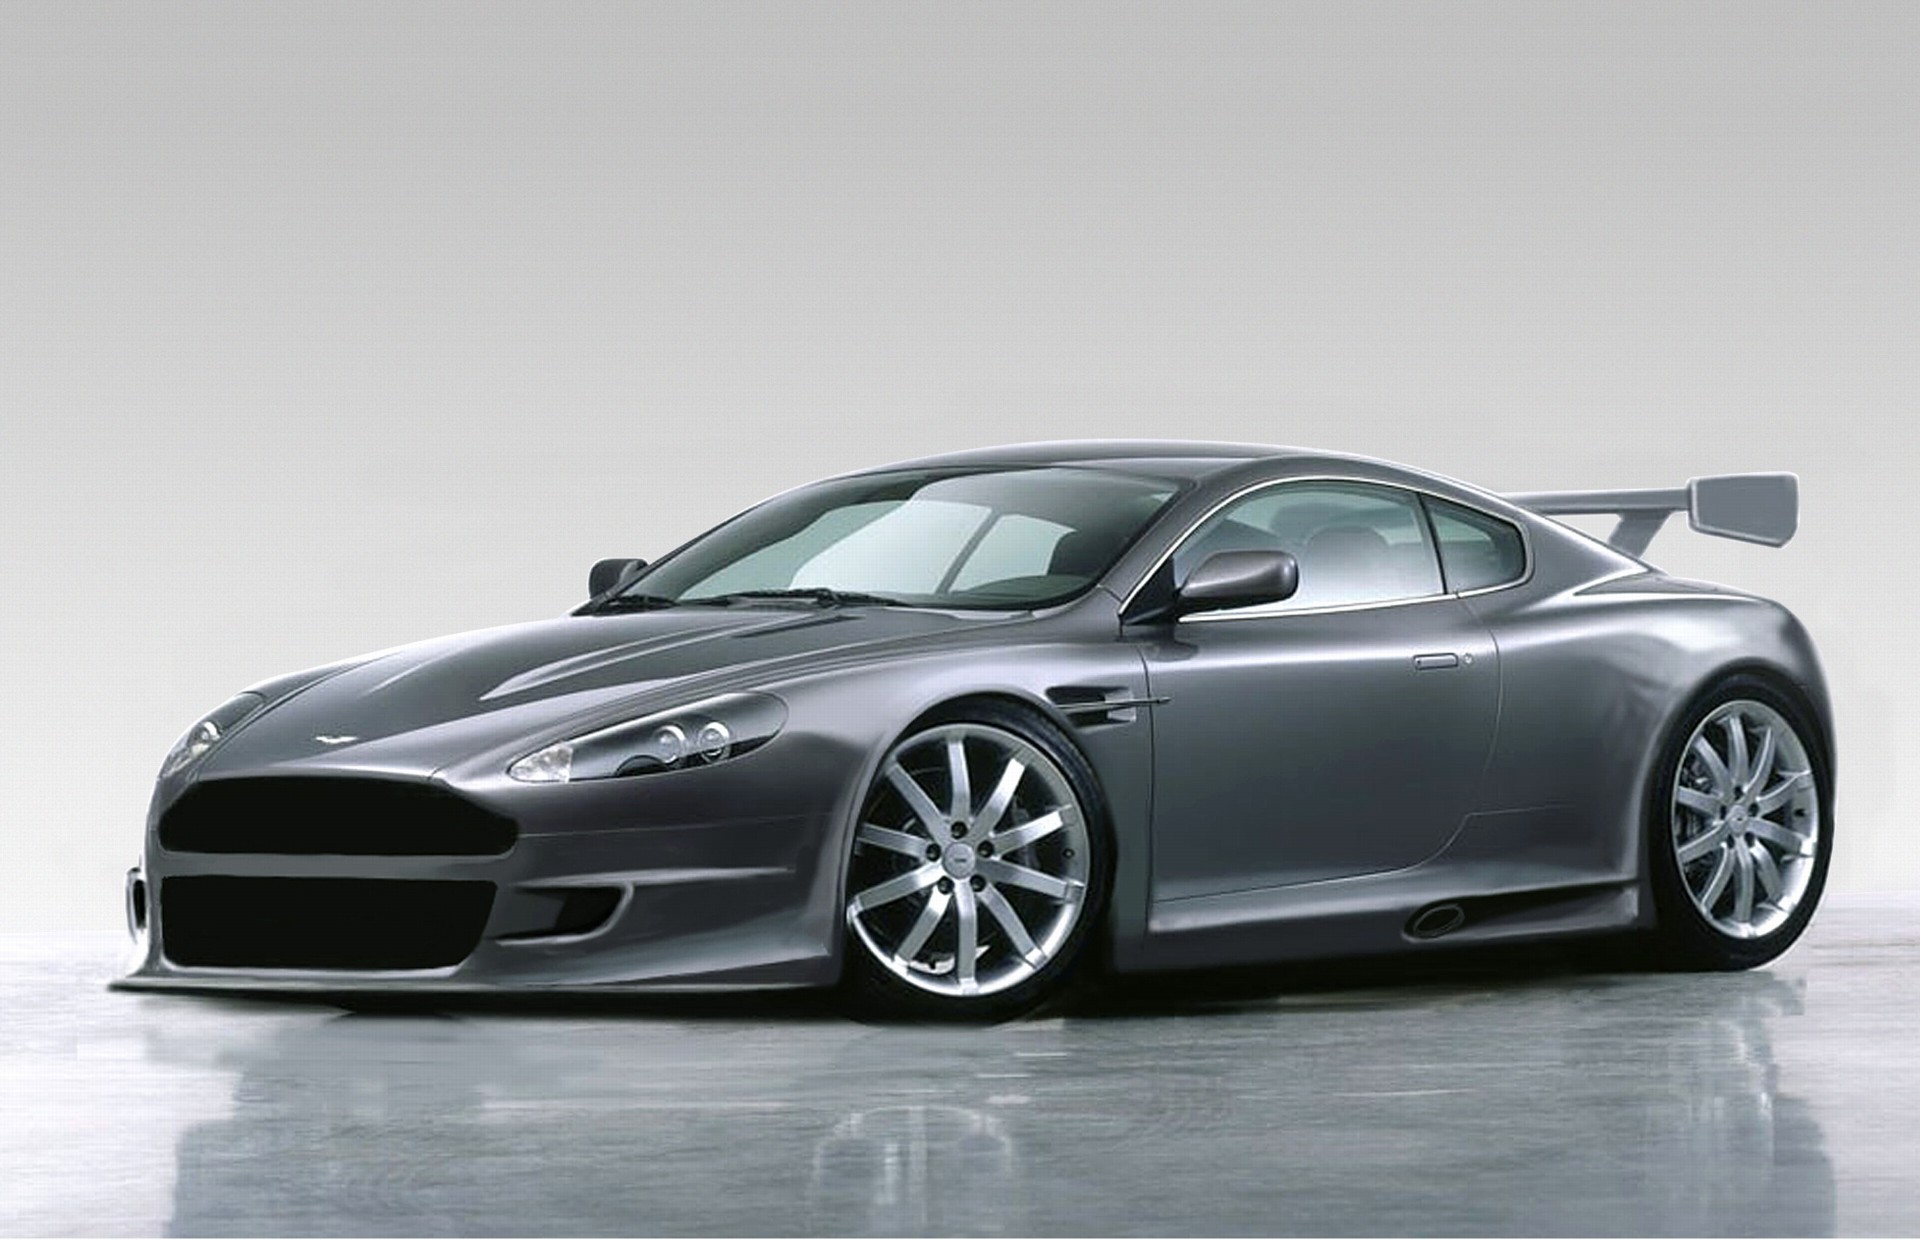 2007 aston martin db9 pictures history value research news. Black Bedroom Furniture Sets. Home Design Ideas